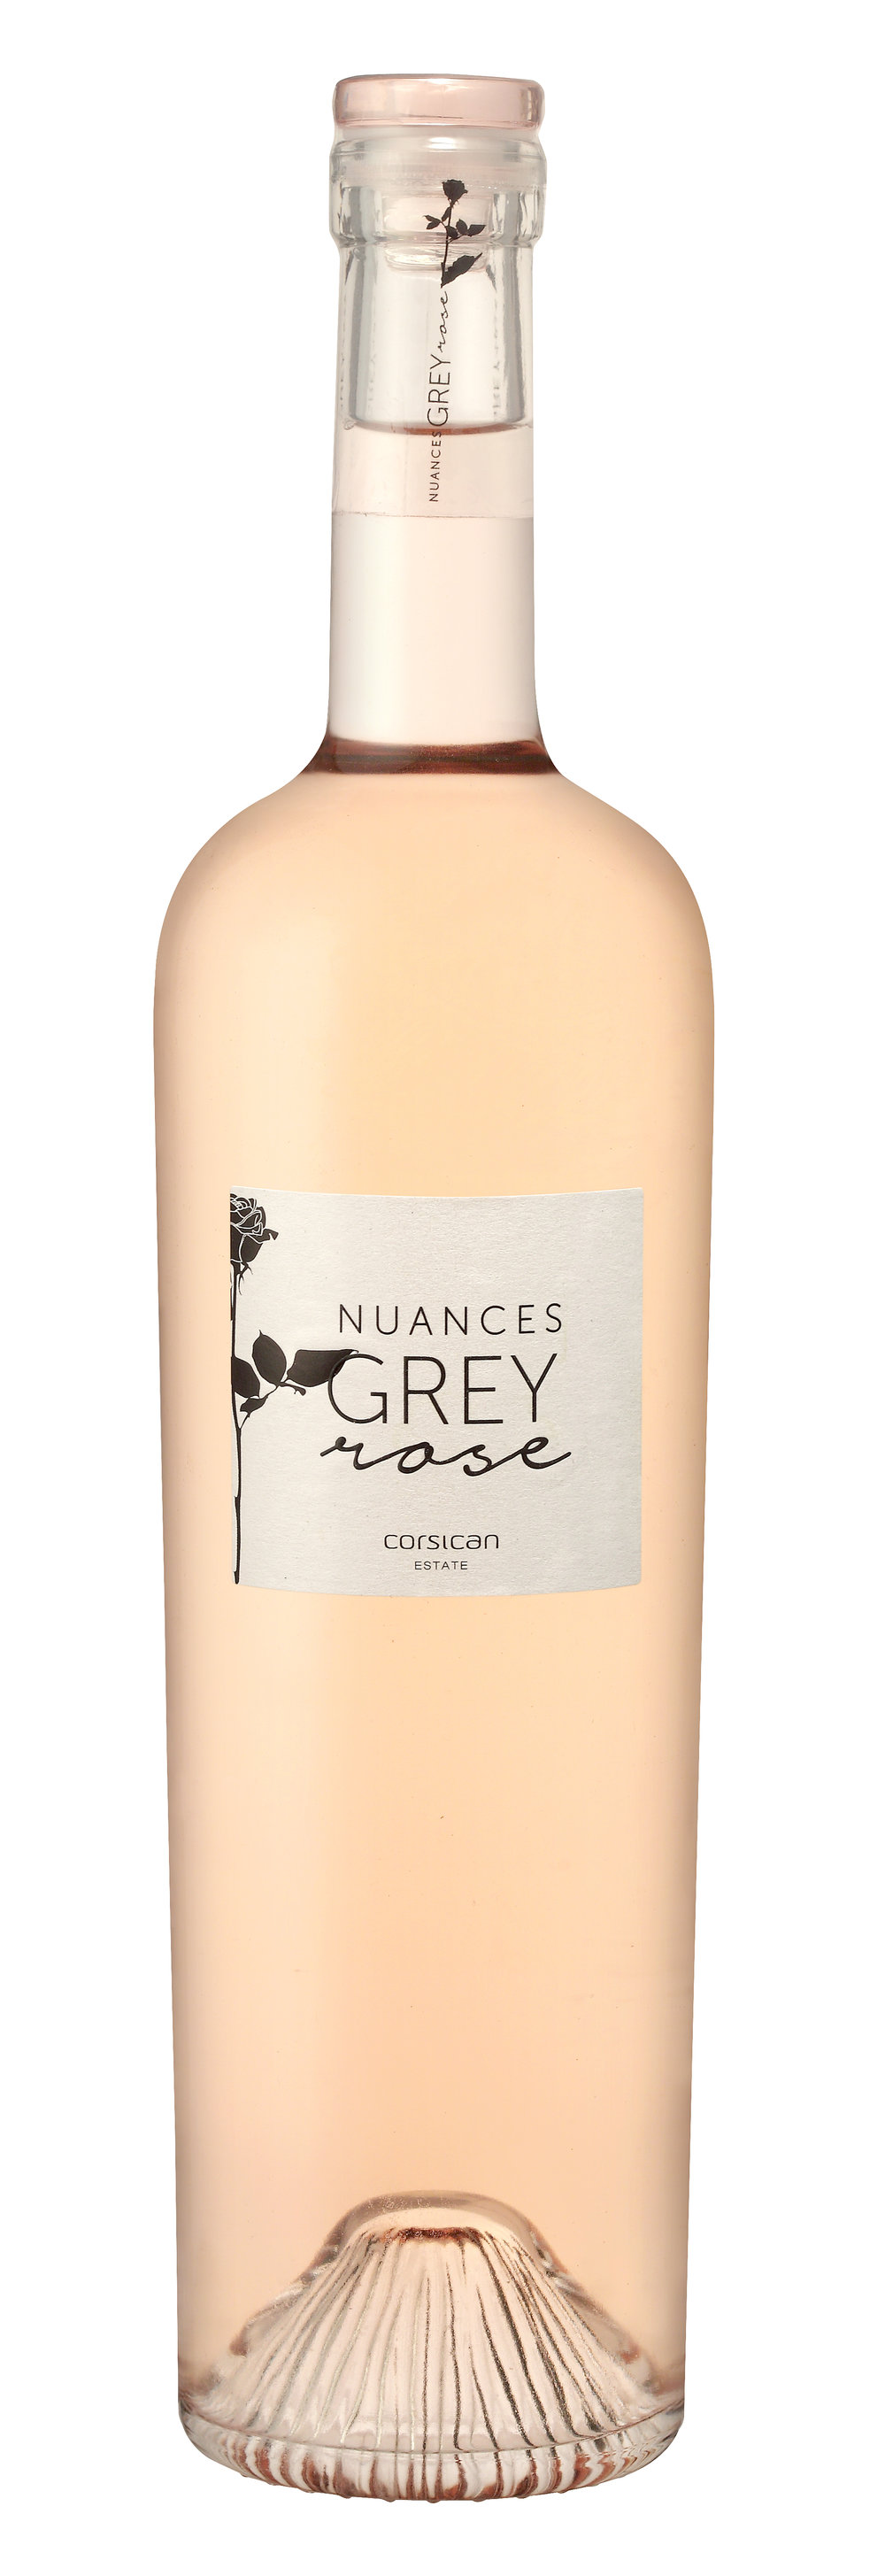 NUANCES GREY ROSE.jpg